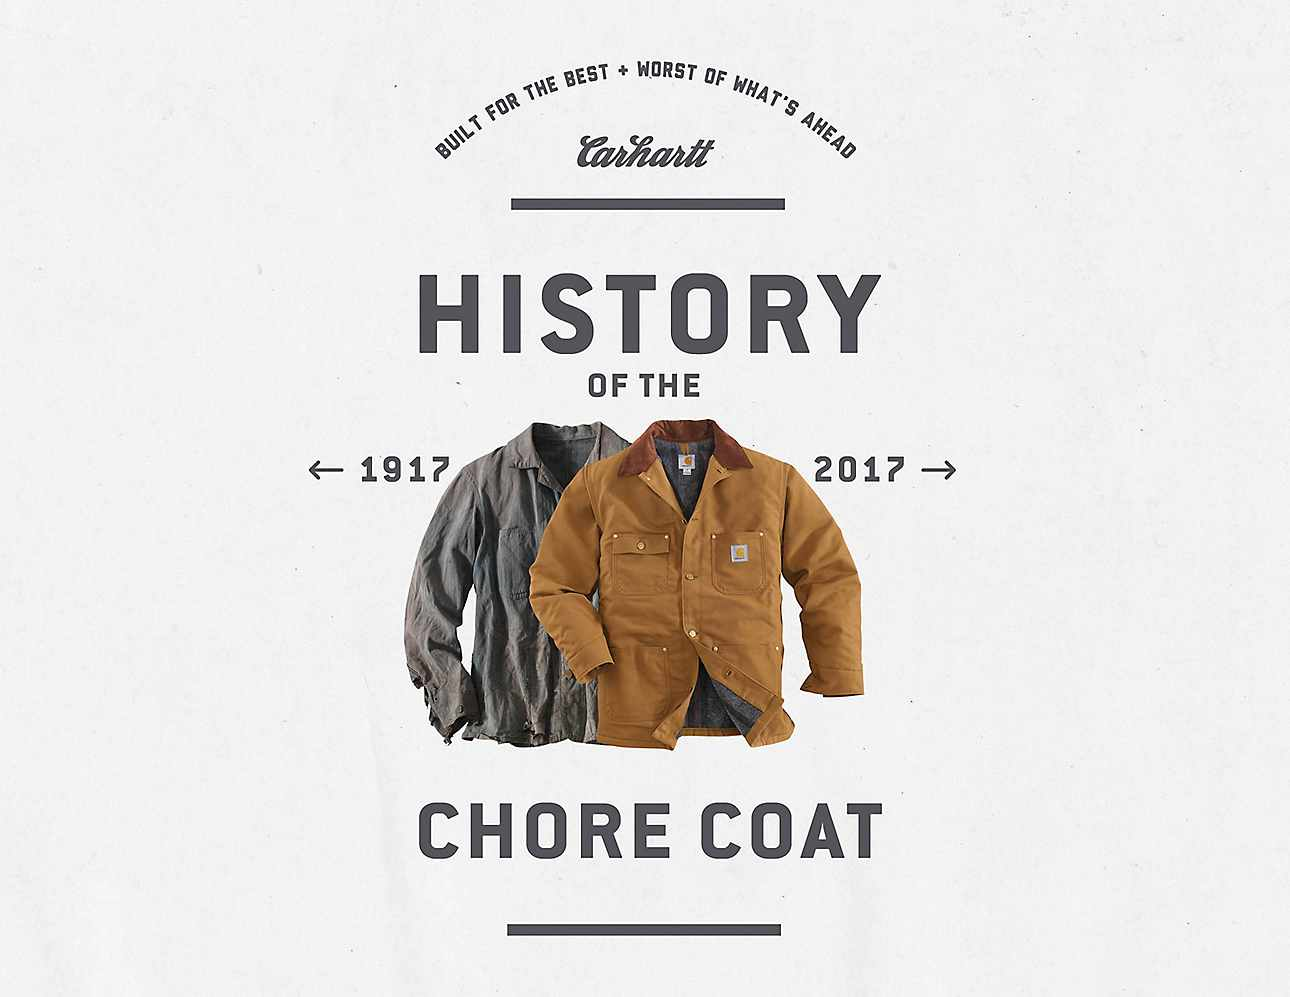 2017 Chore Coat ad featuring archival product from circa 1917